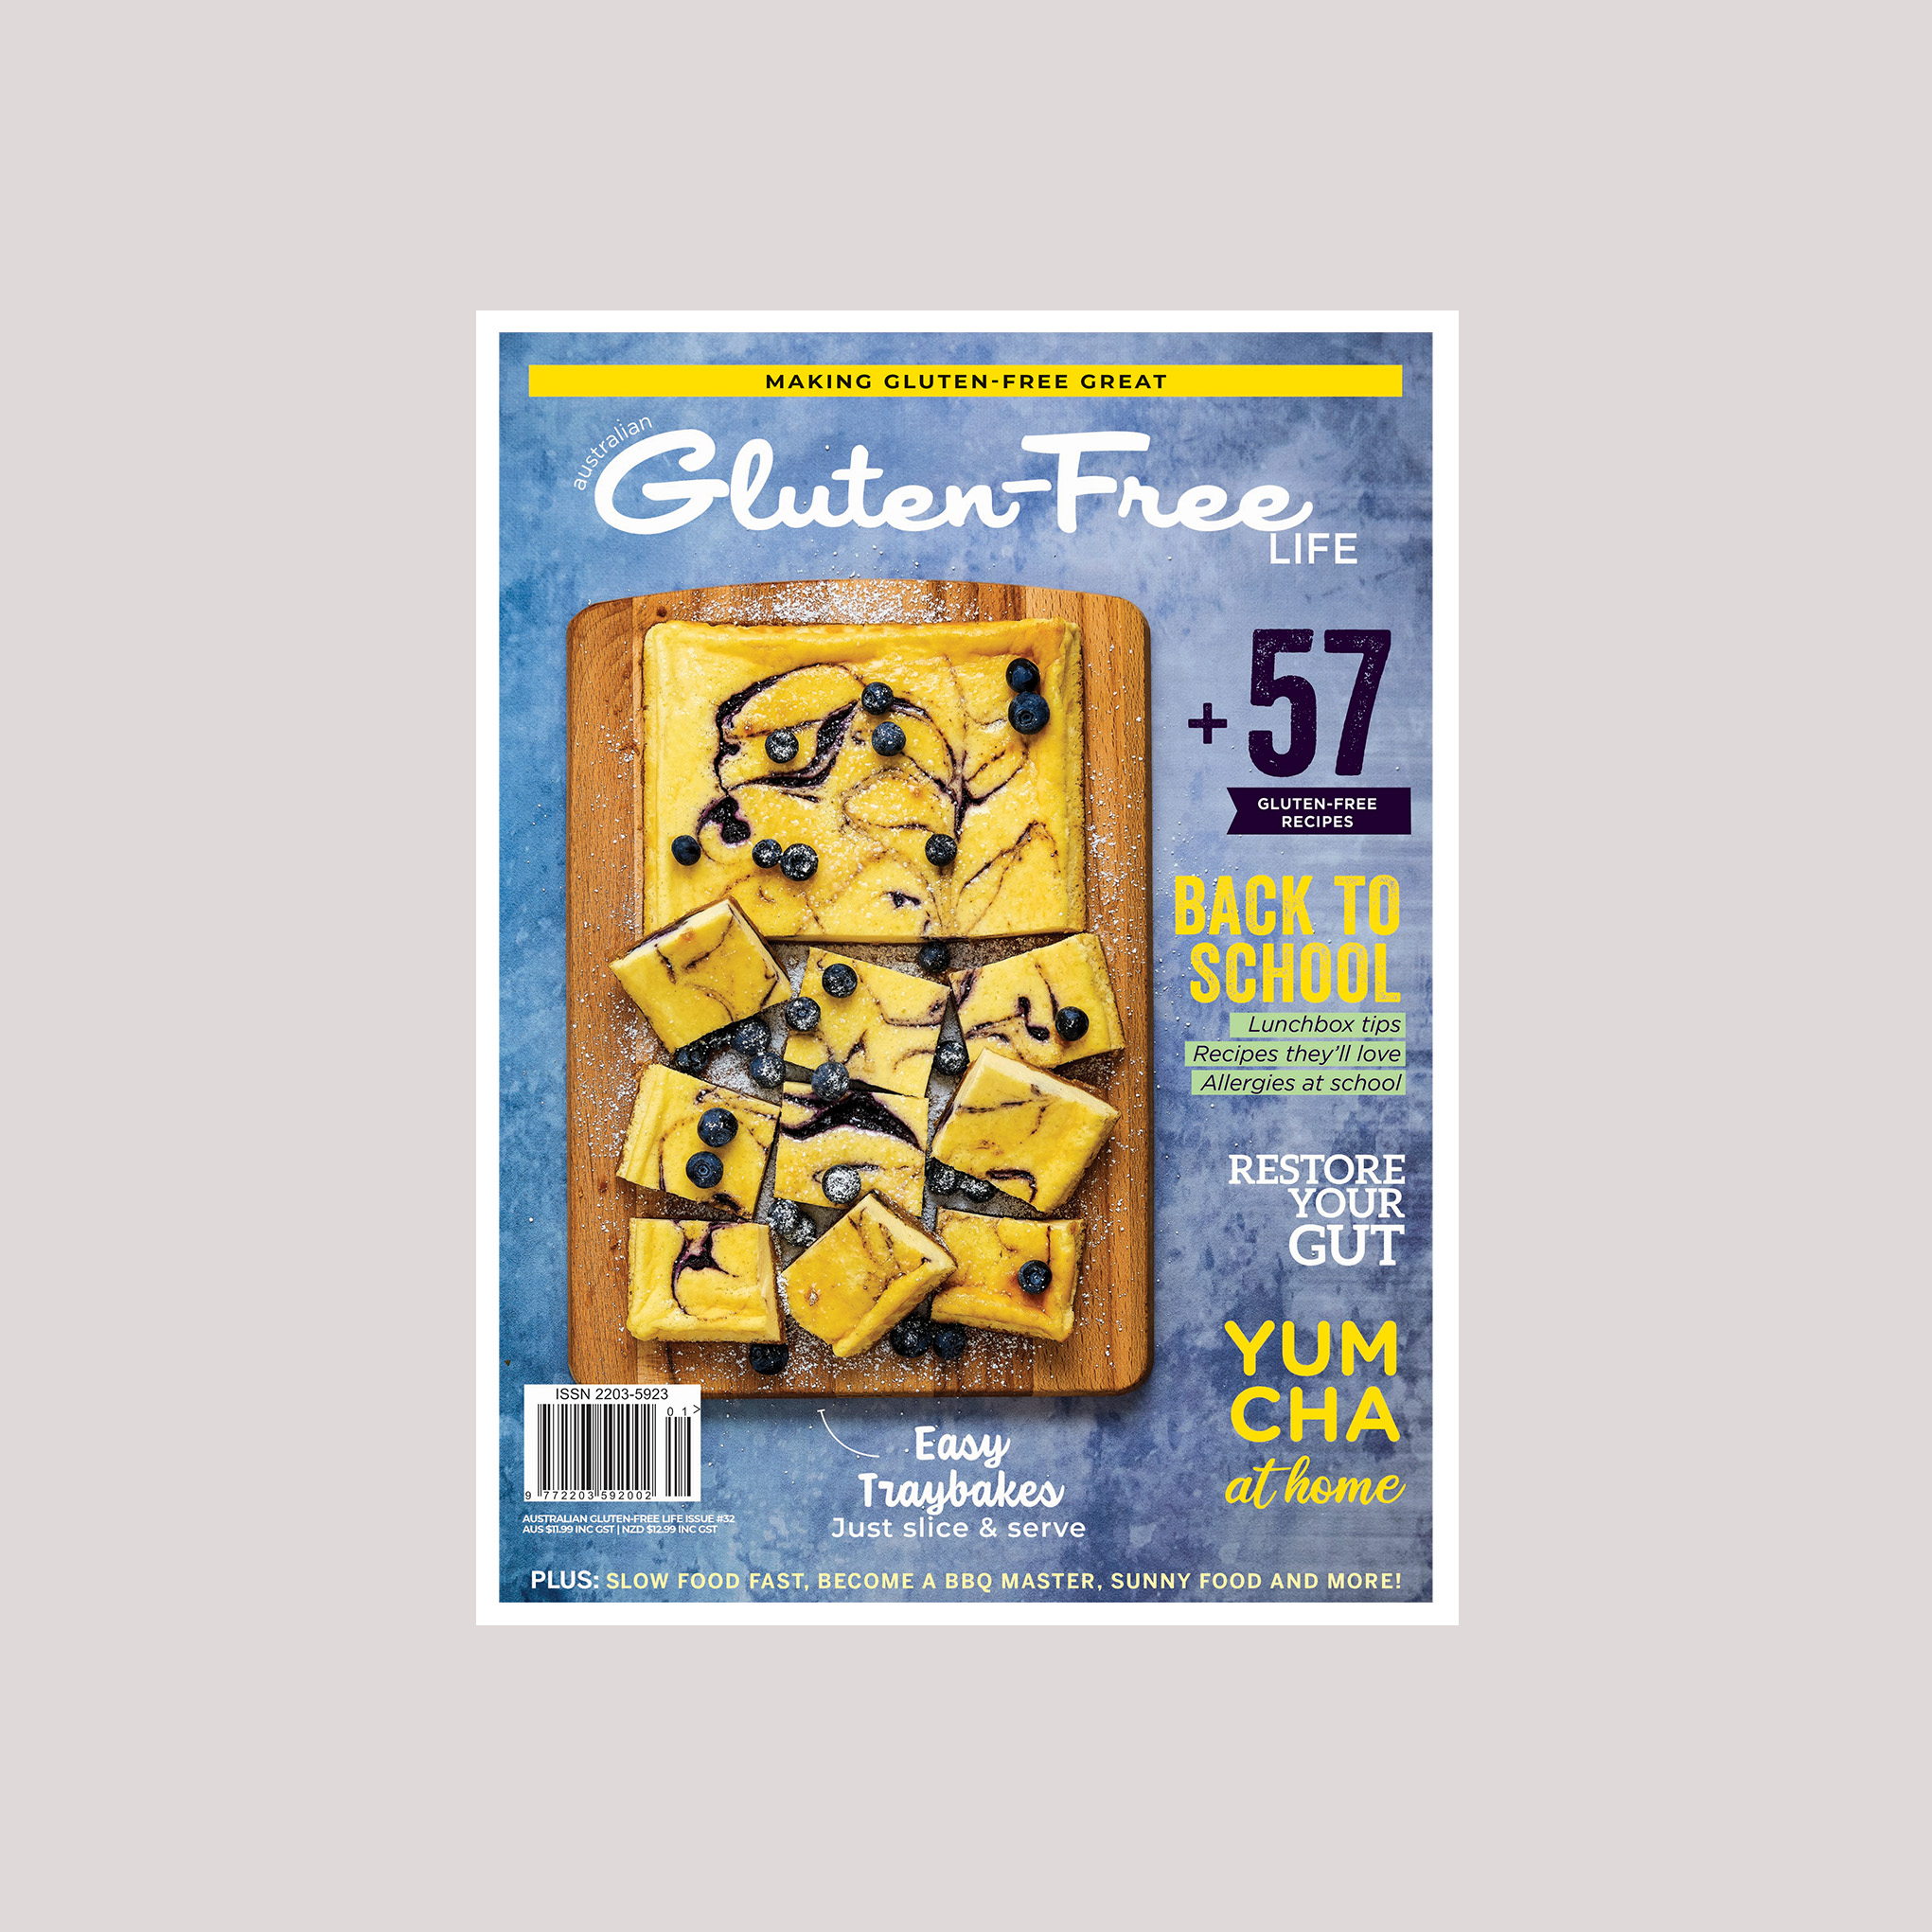 Gluten-free magazine cover with a sliced blueberry cheesecake slice on a wooden board and blue background. Yum Cha recipes, lunchbox tips, gut health and more inside.